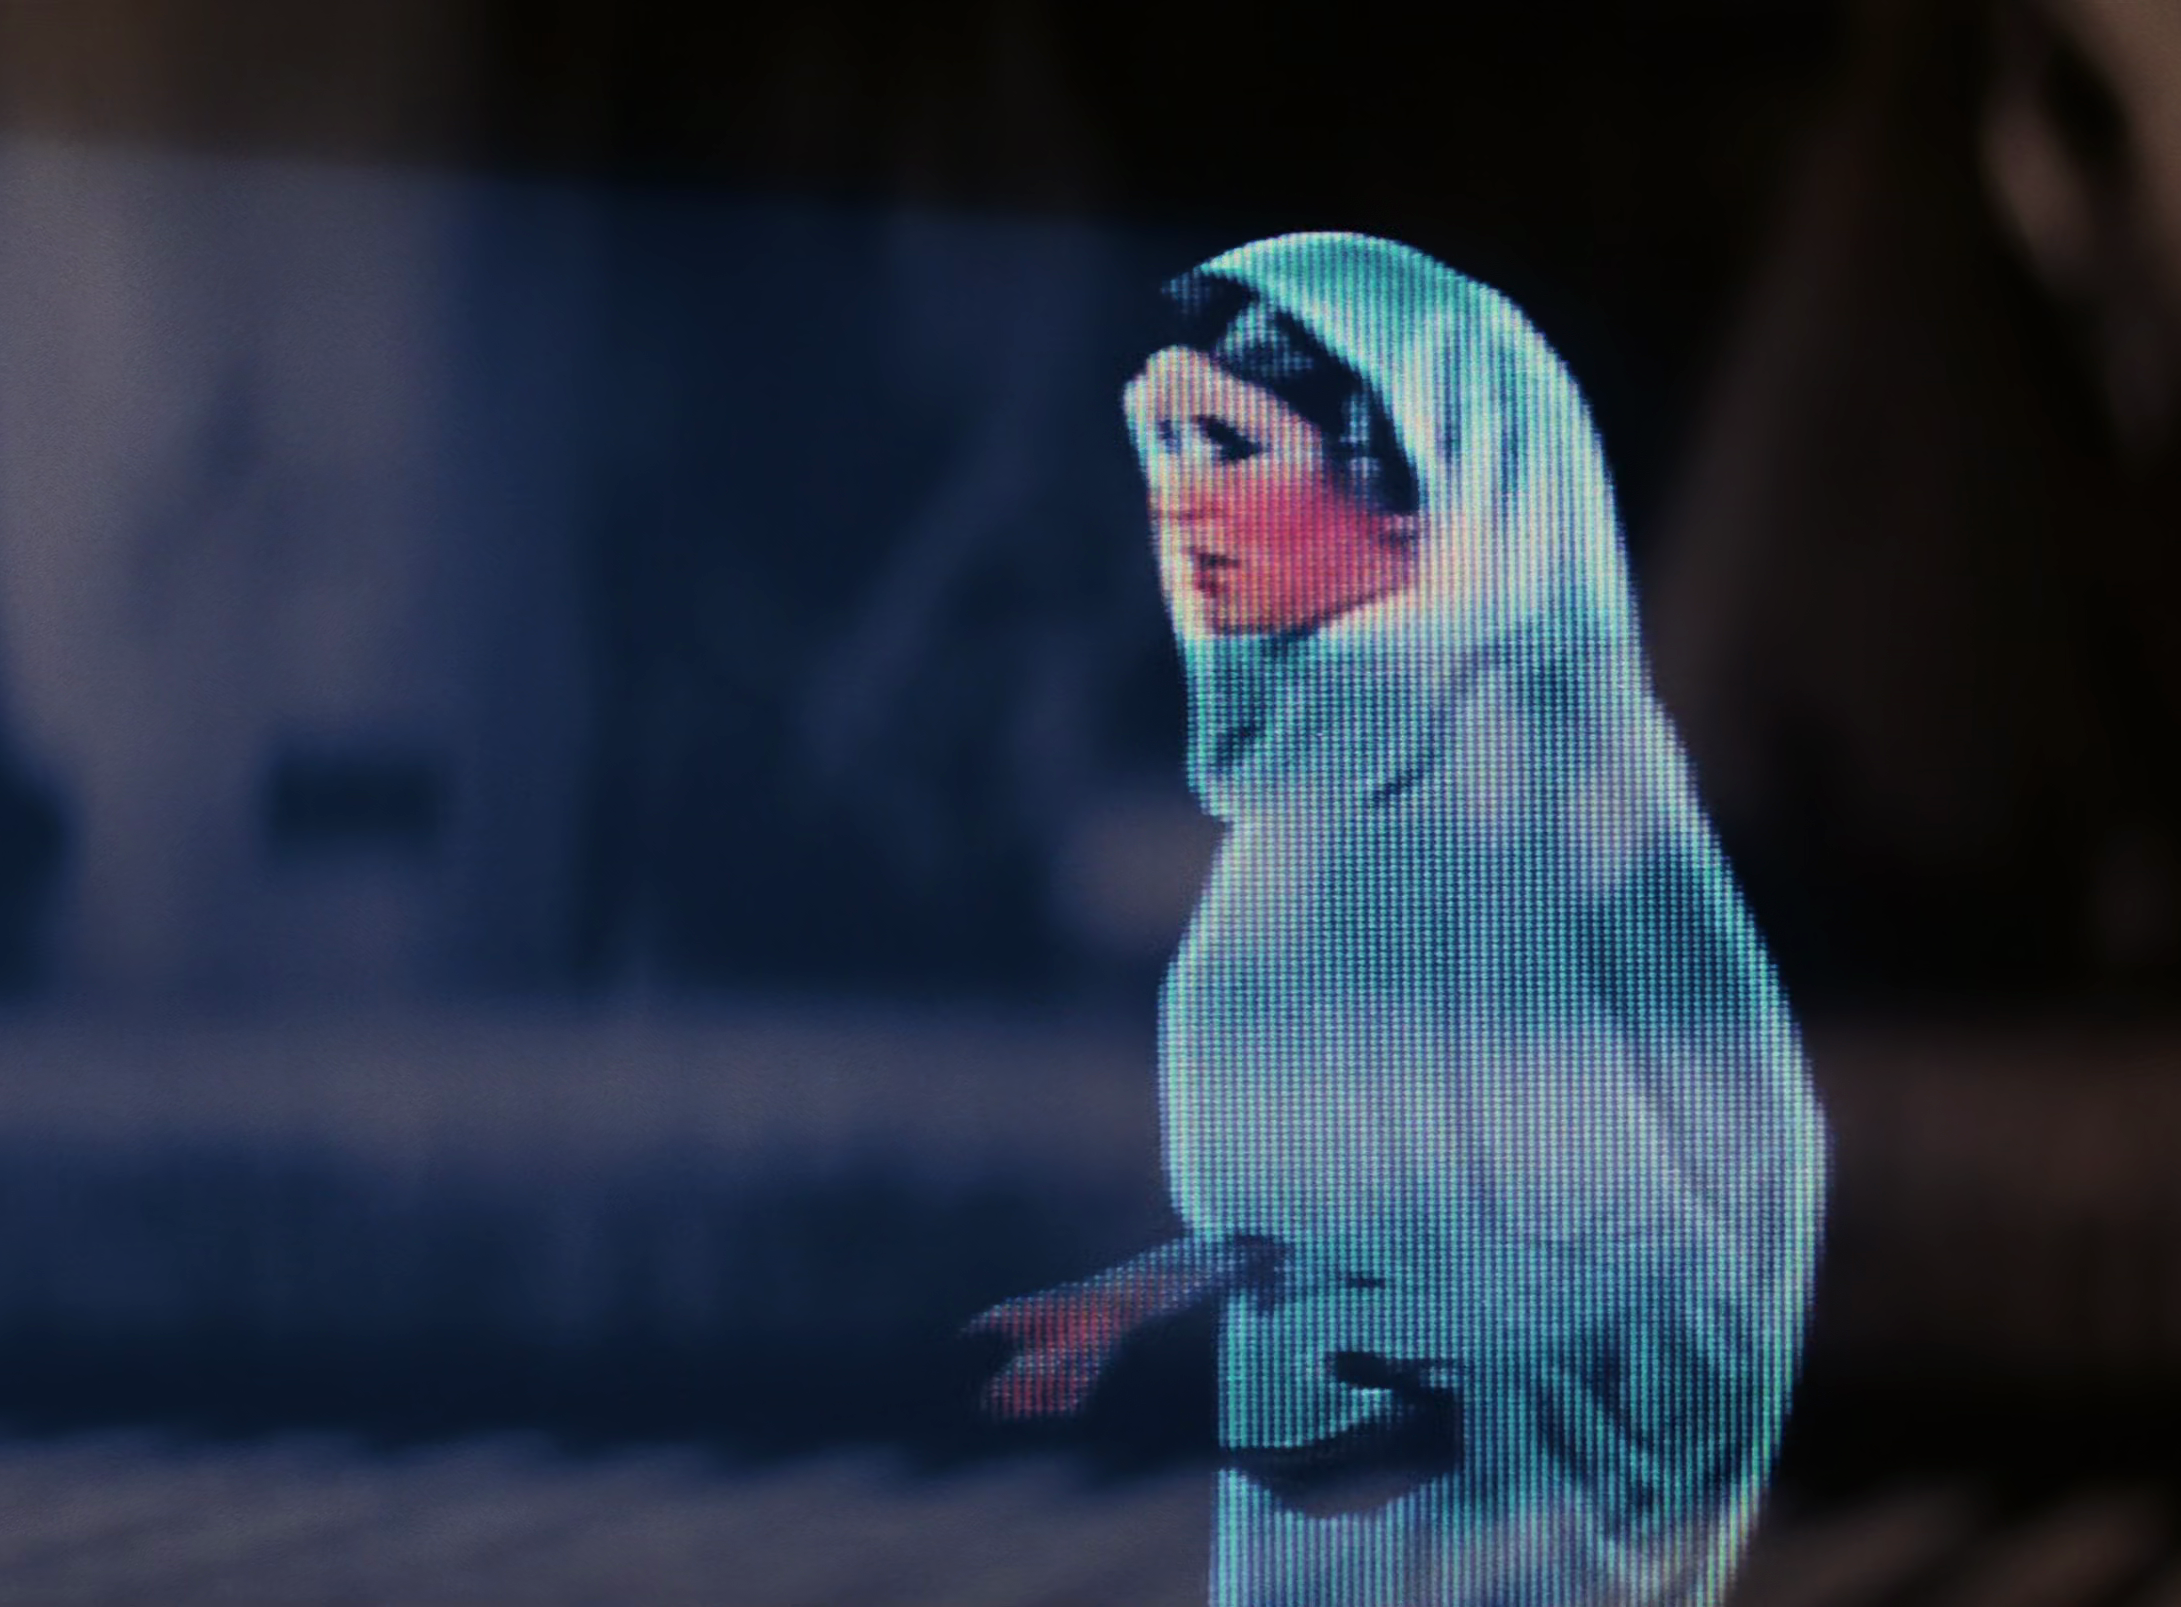 Princess Leia's hologram